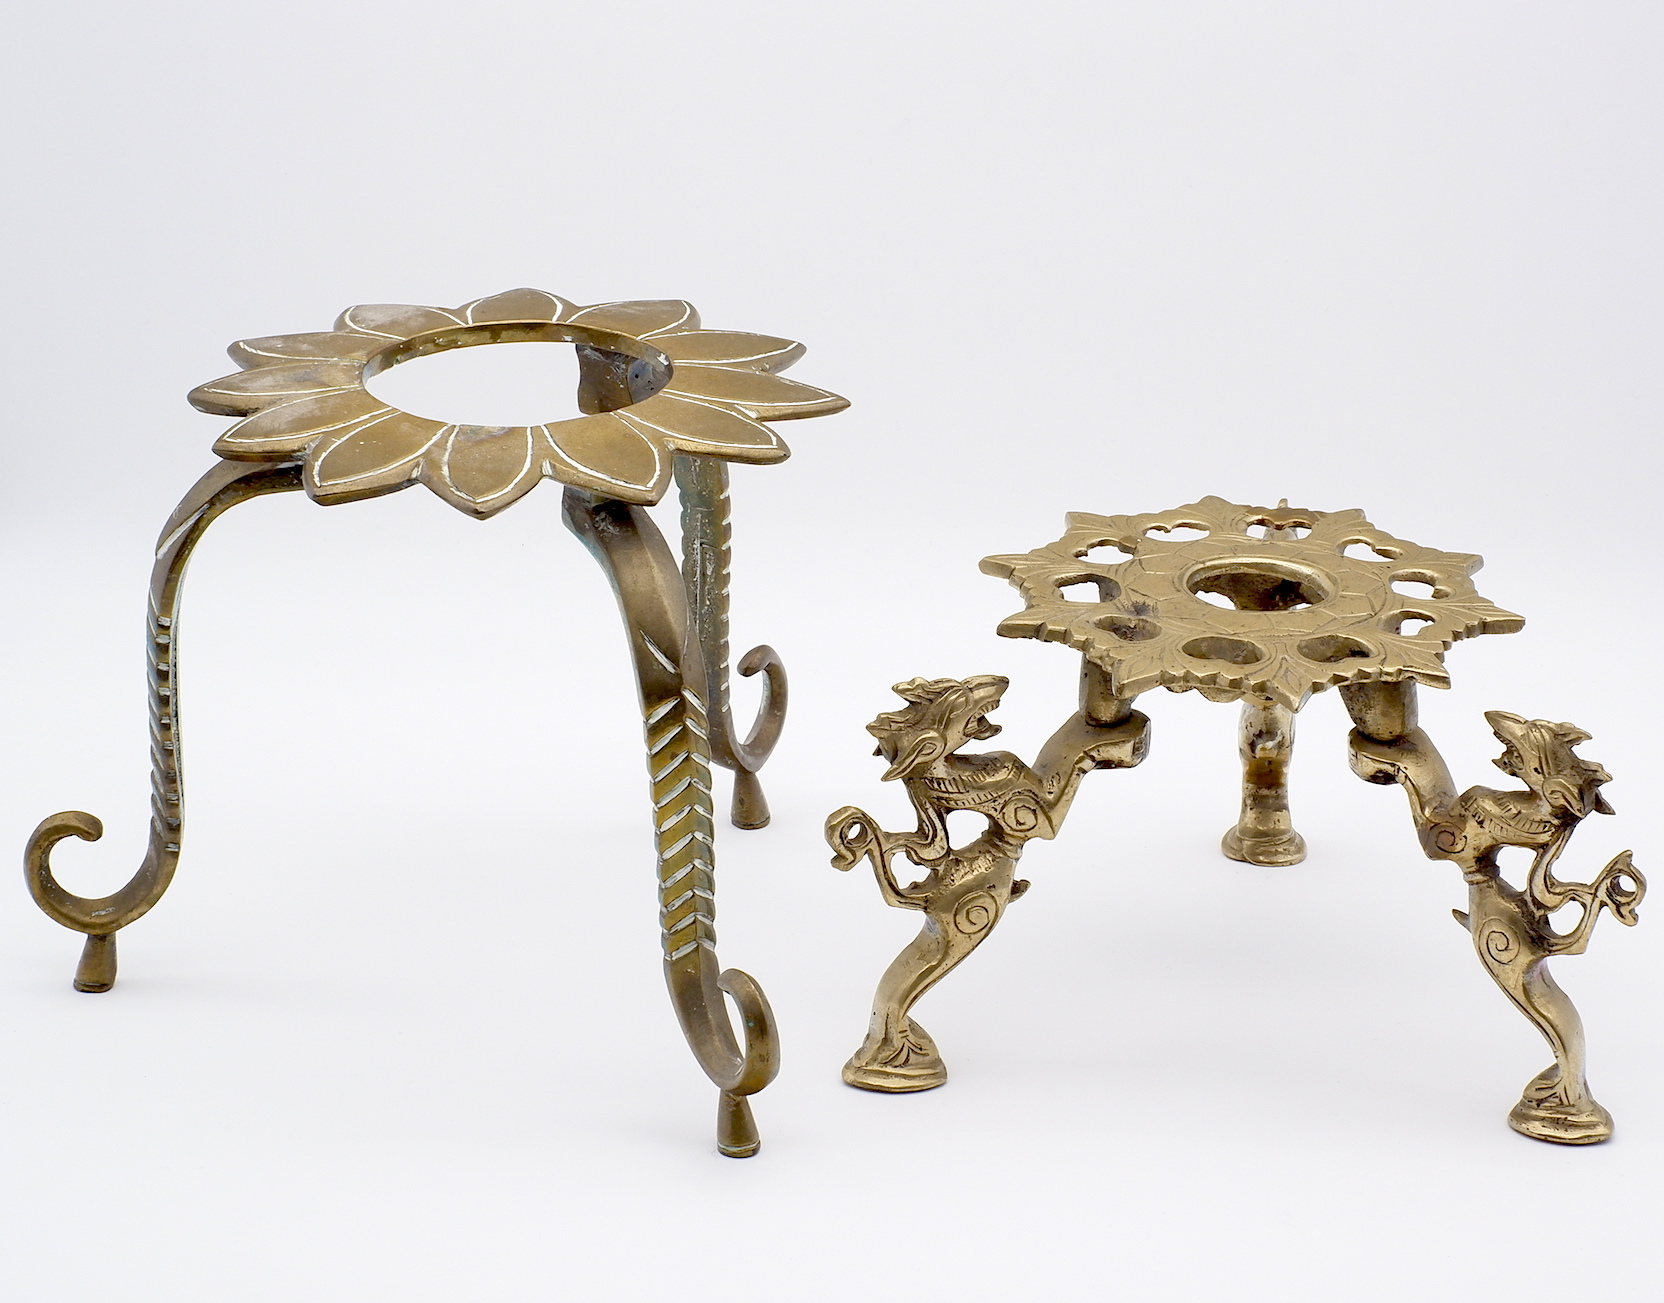 'Two Indian Mughal Cast Brass Trivets, 19th Century or Earlier'